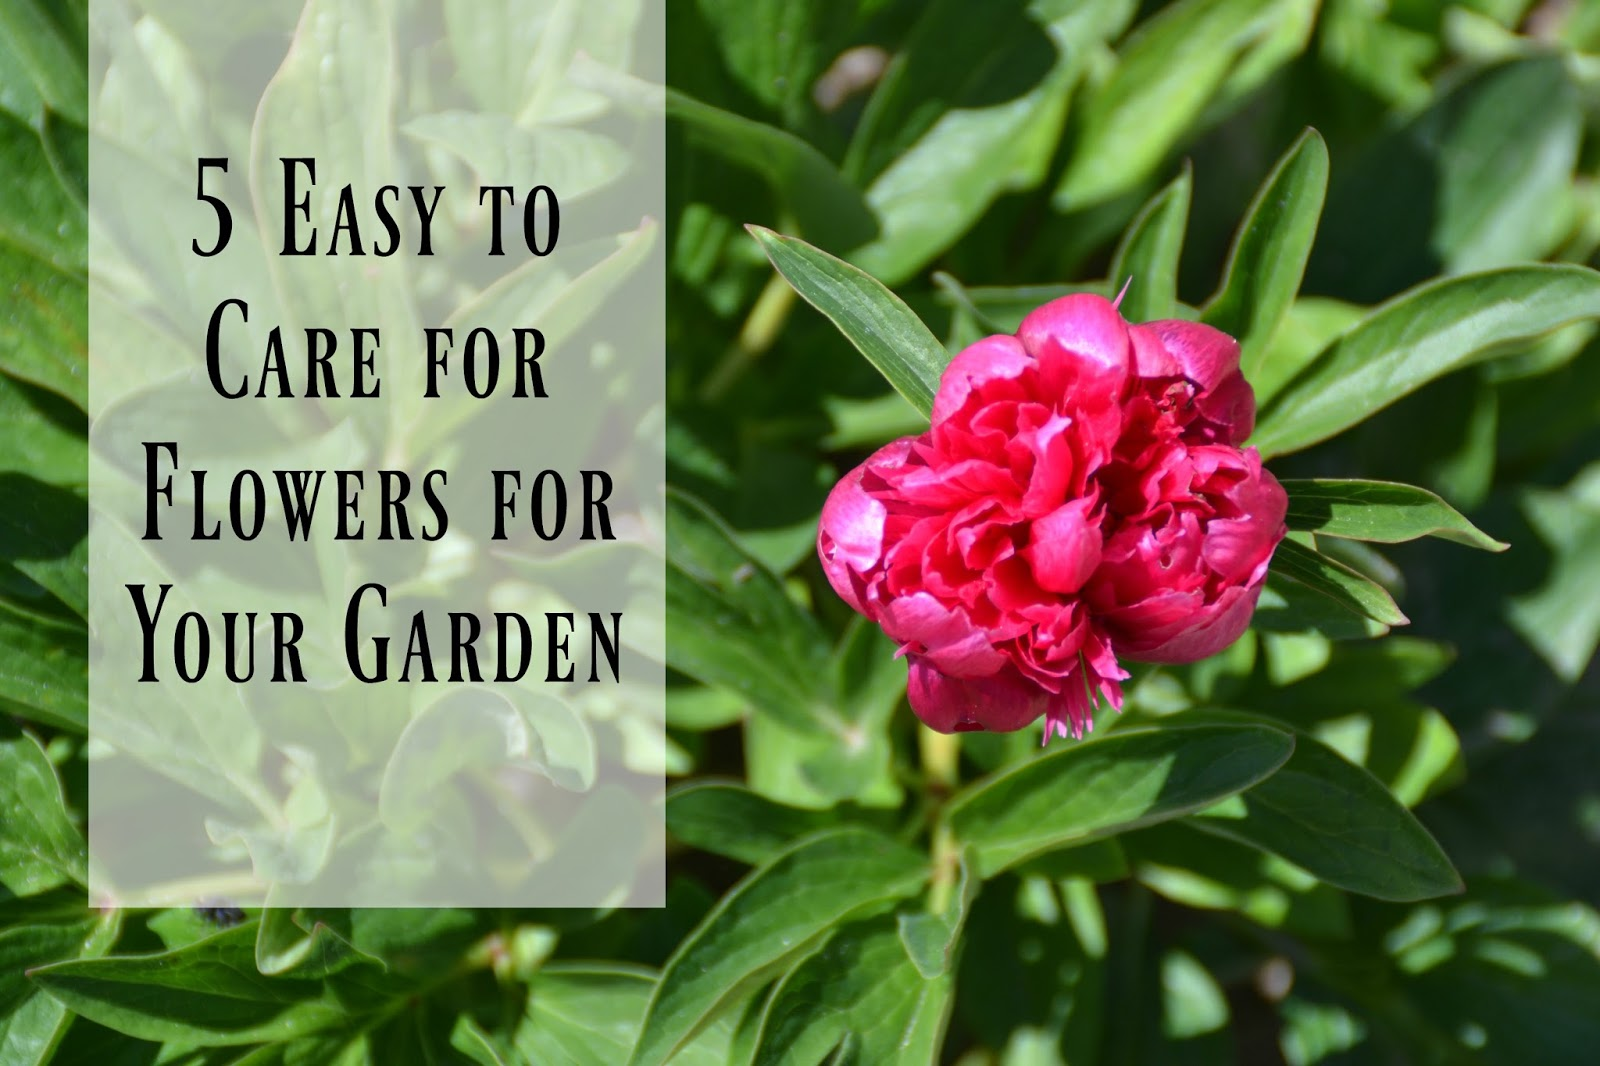 Top 28 Easy Flowers To Take Care Of 4mykiddos 5 Easy